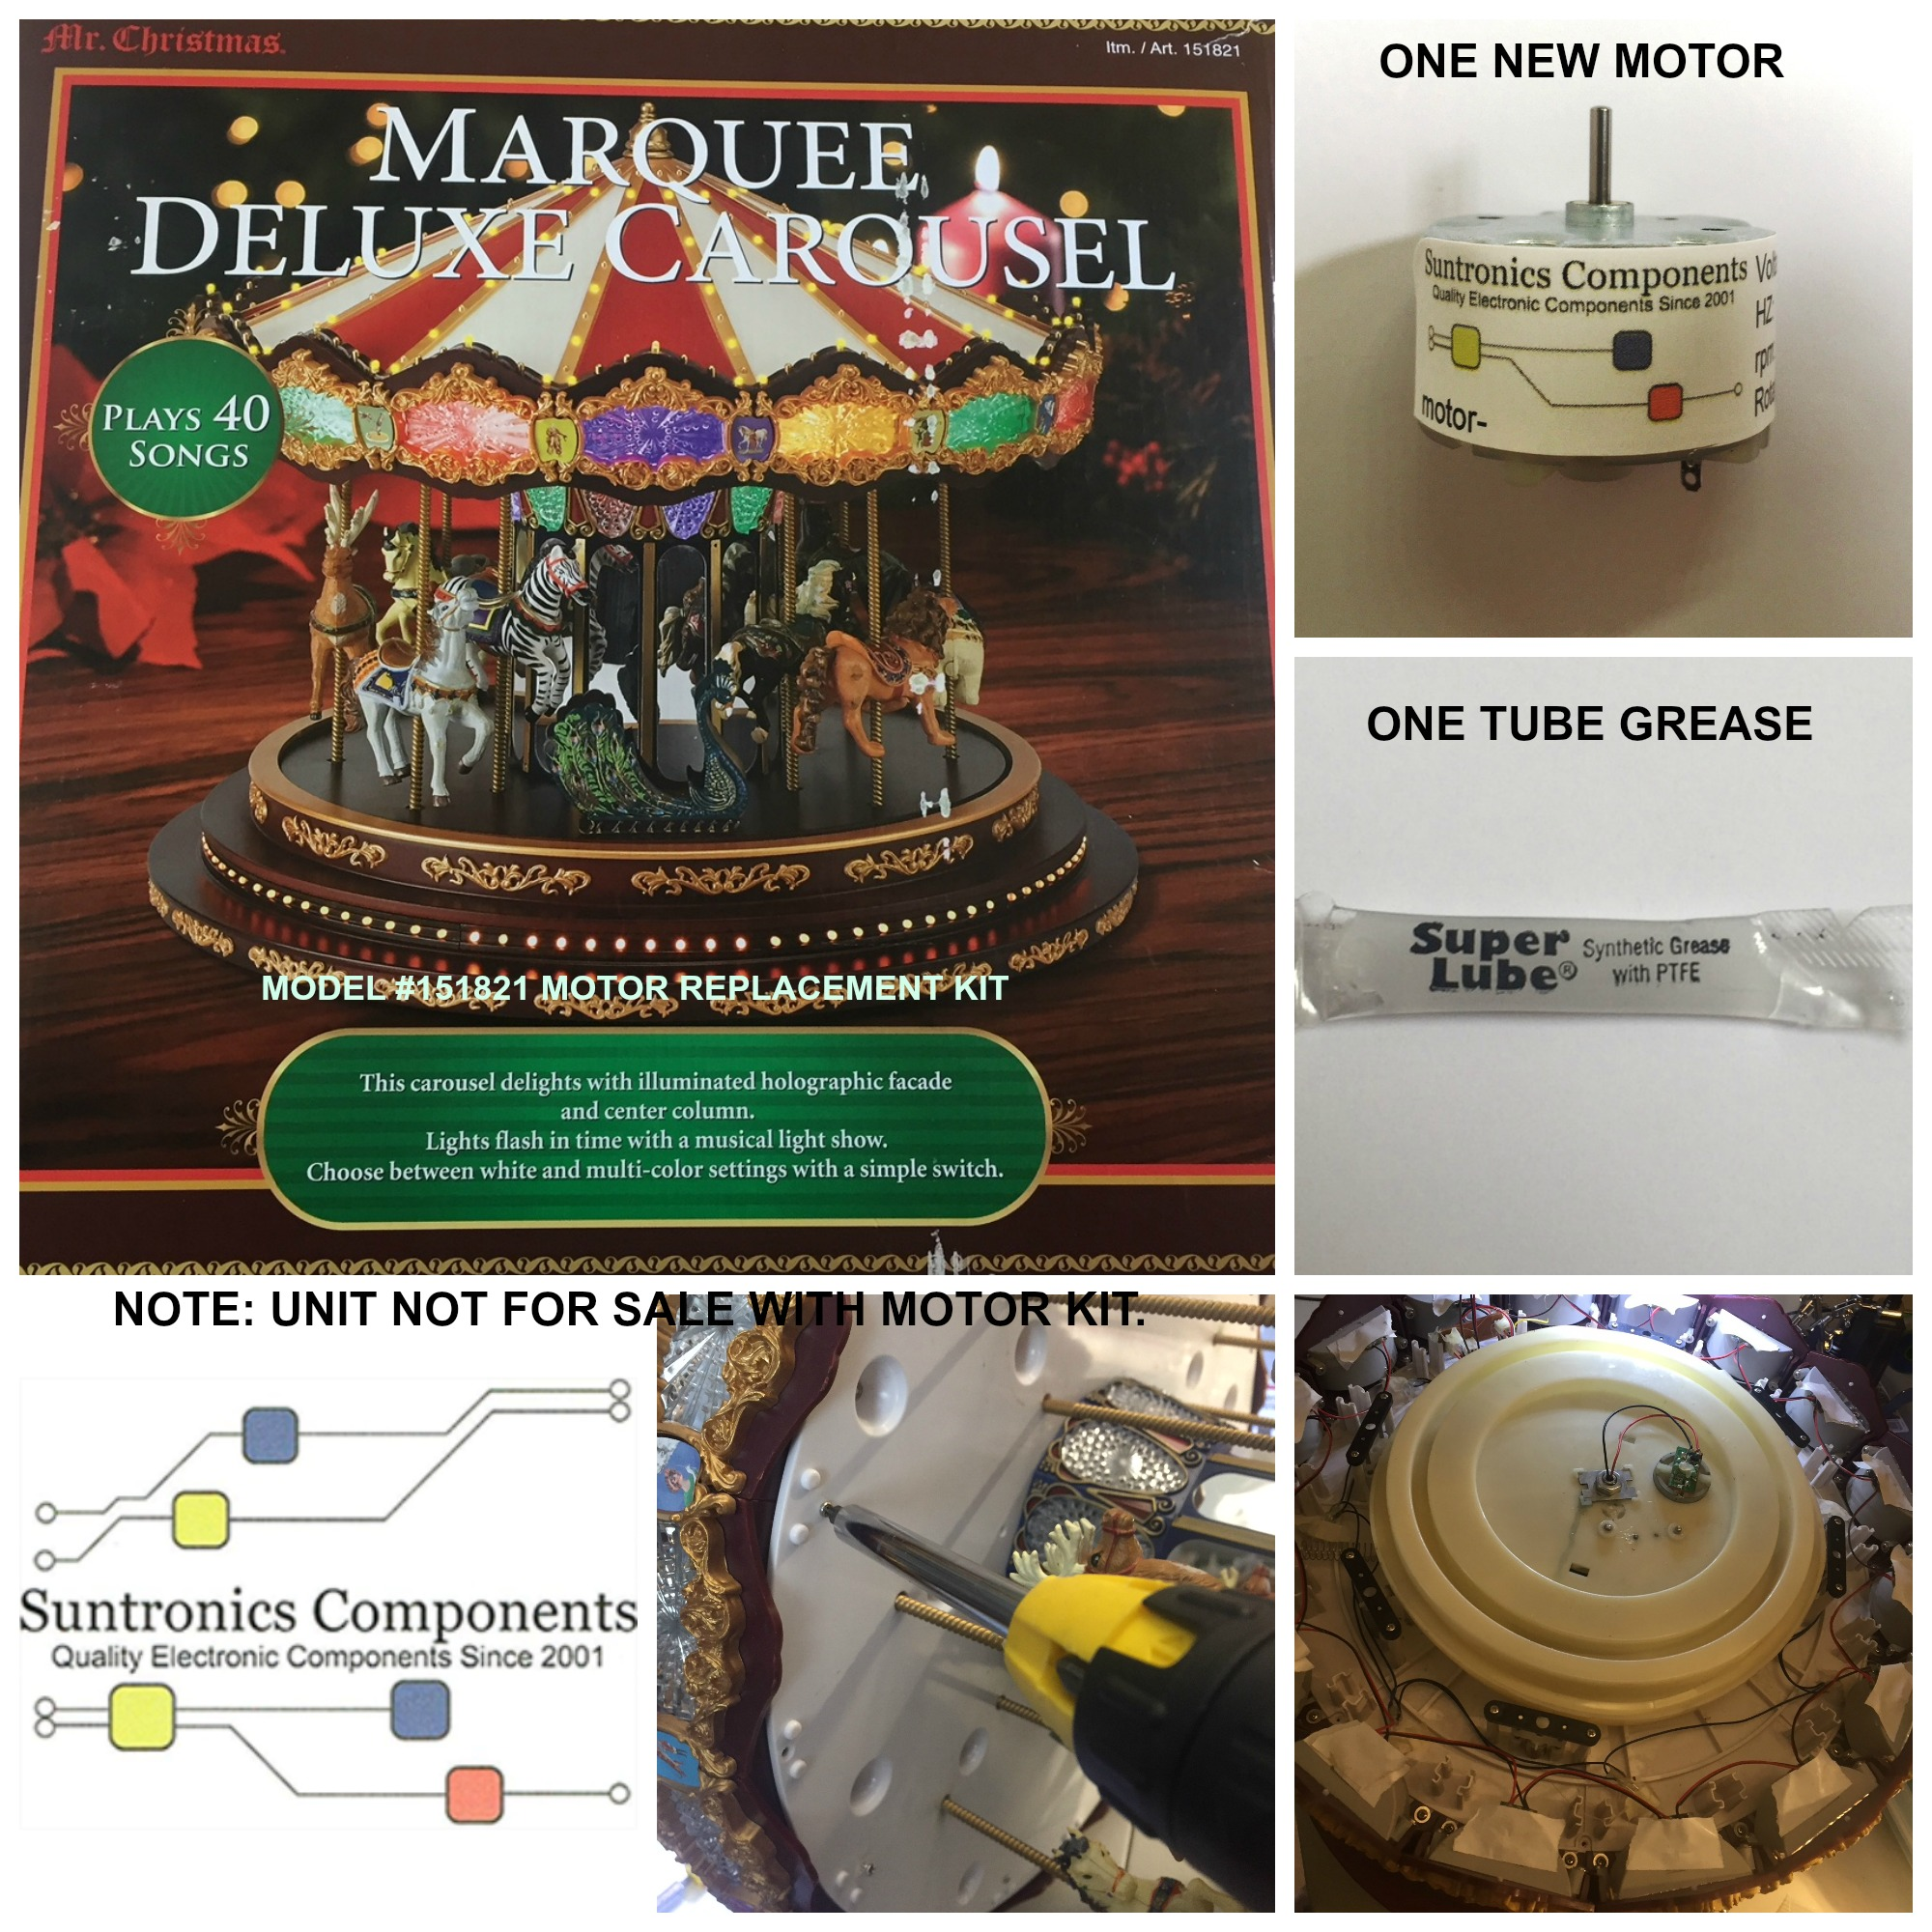 PicMonkey Image MR CHRISTMAS MARQUEE DELUXE CAROUSEL MODEL# 151821 MOTOR KIT